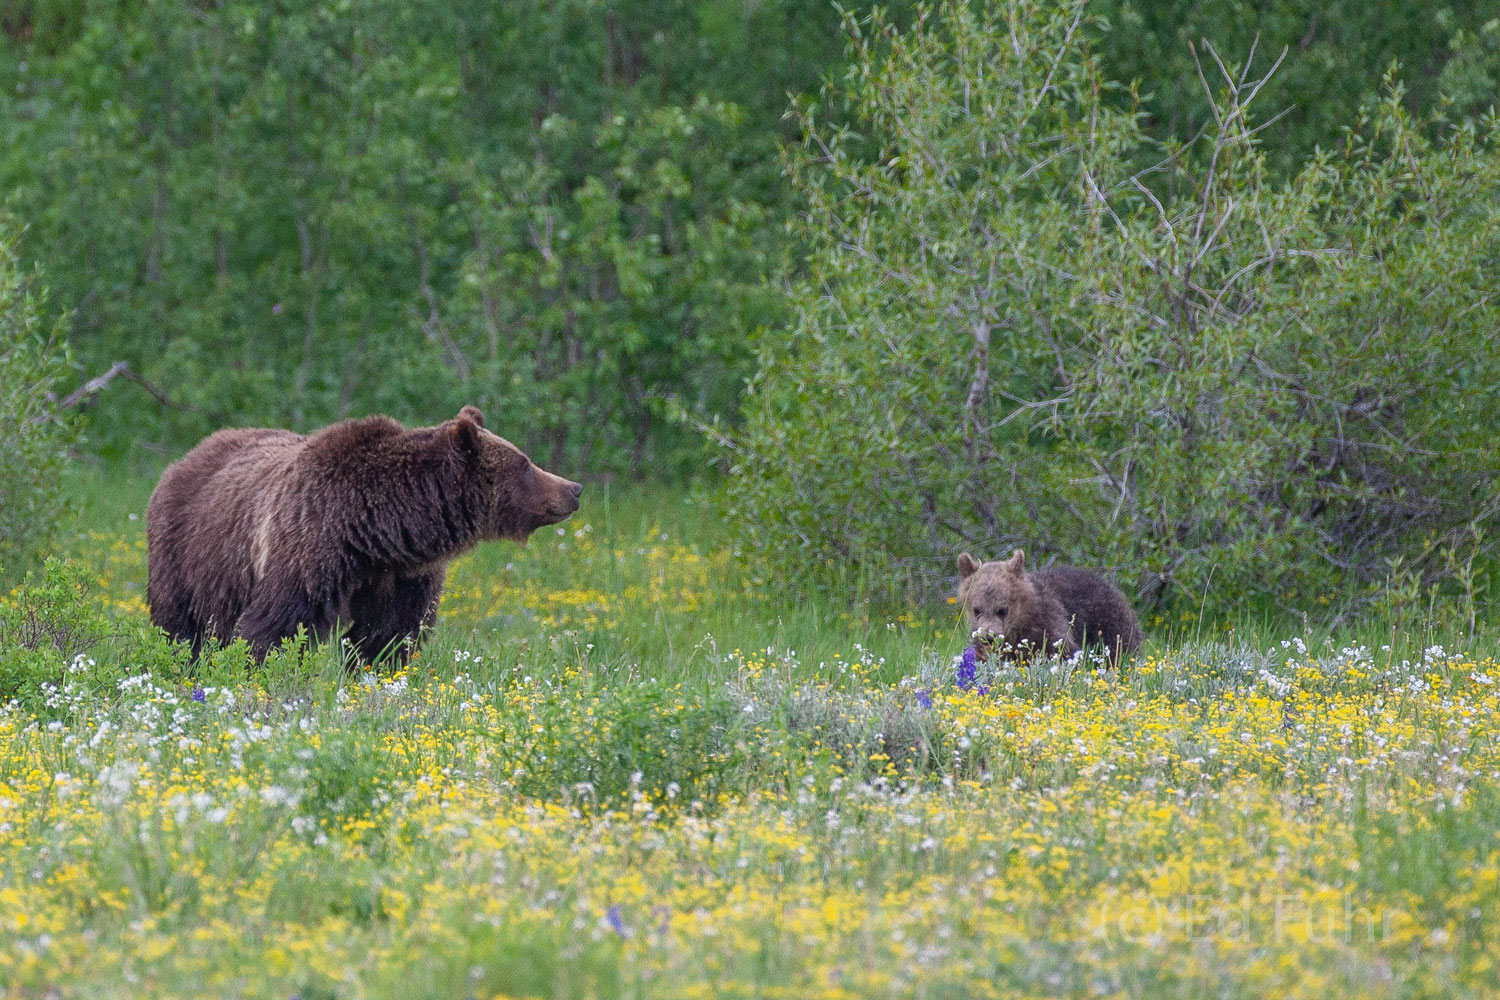 Grizzly 399, the grand matriarch of the Grand Tetons, remains on high alert as one of her three cubs checks out the meadow's...